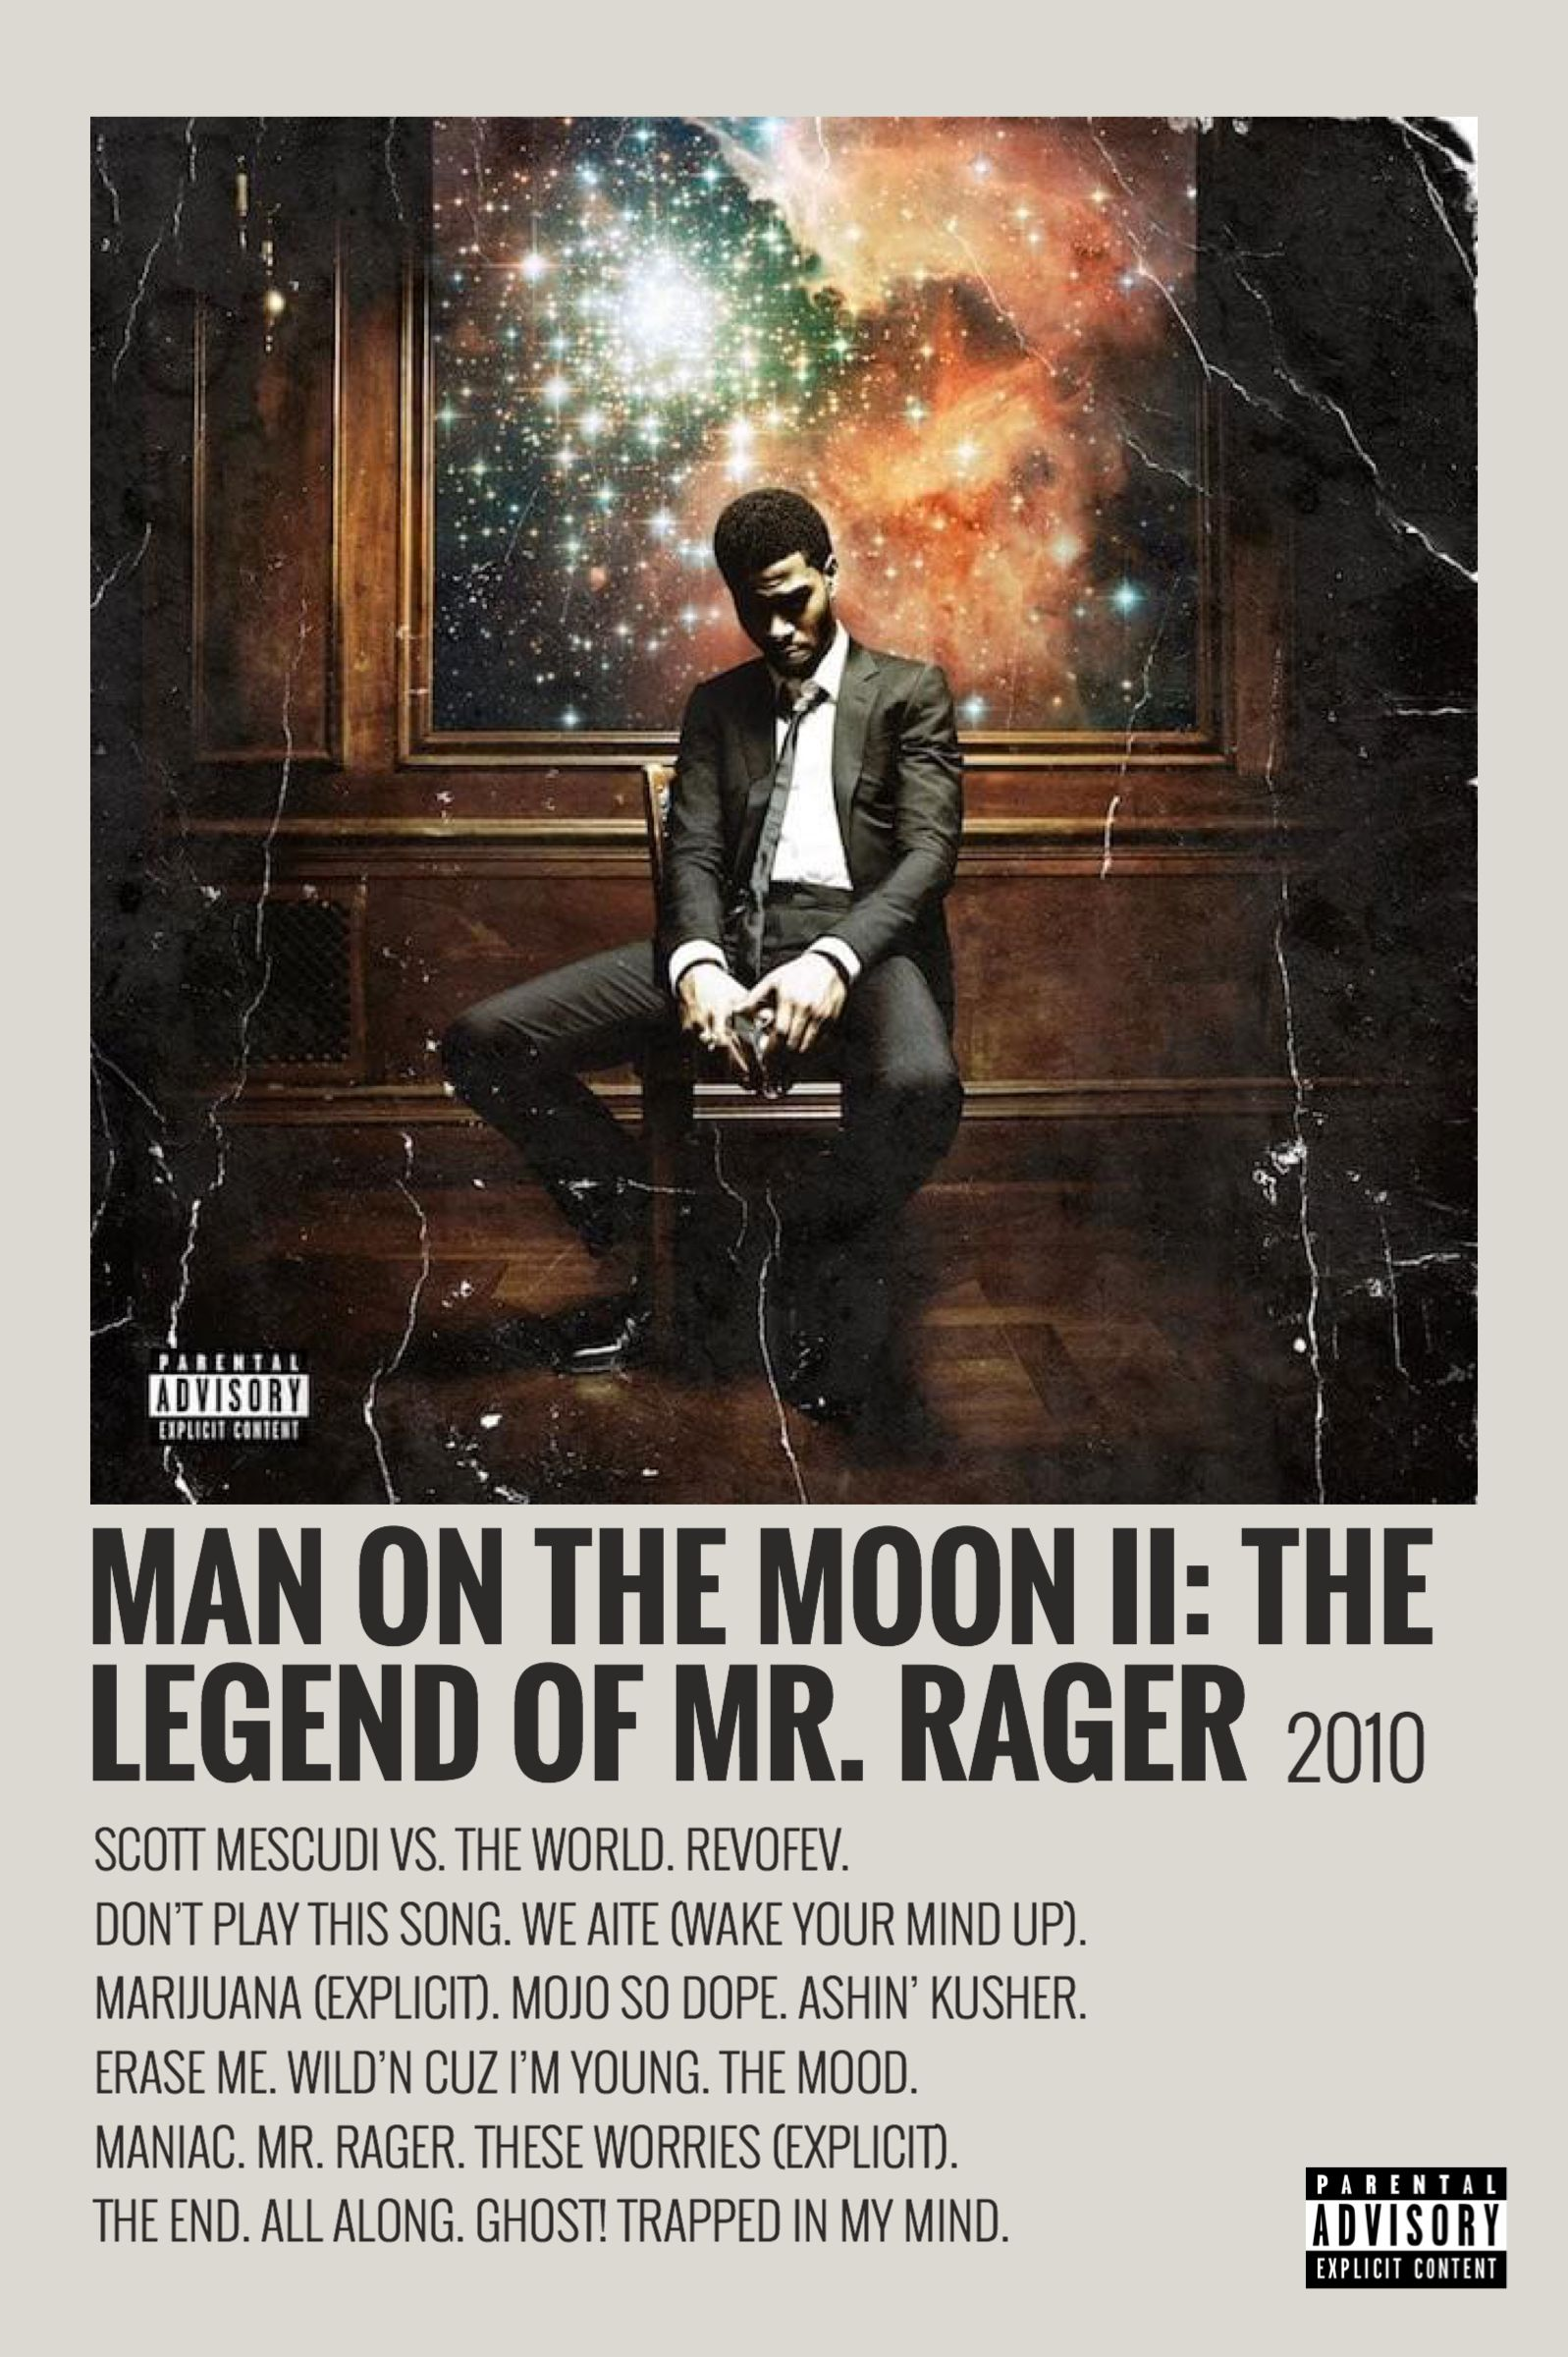 man on the moon by maja music poster